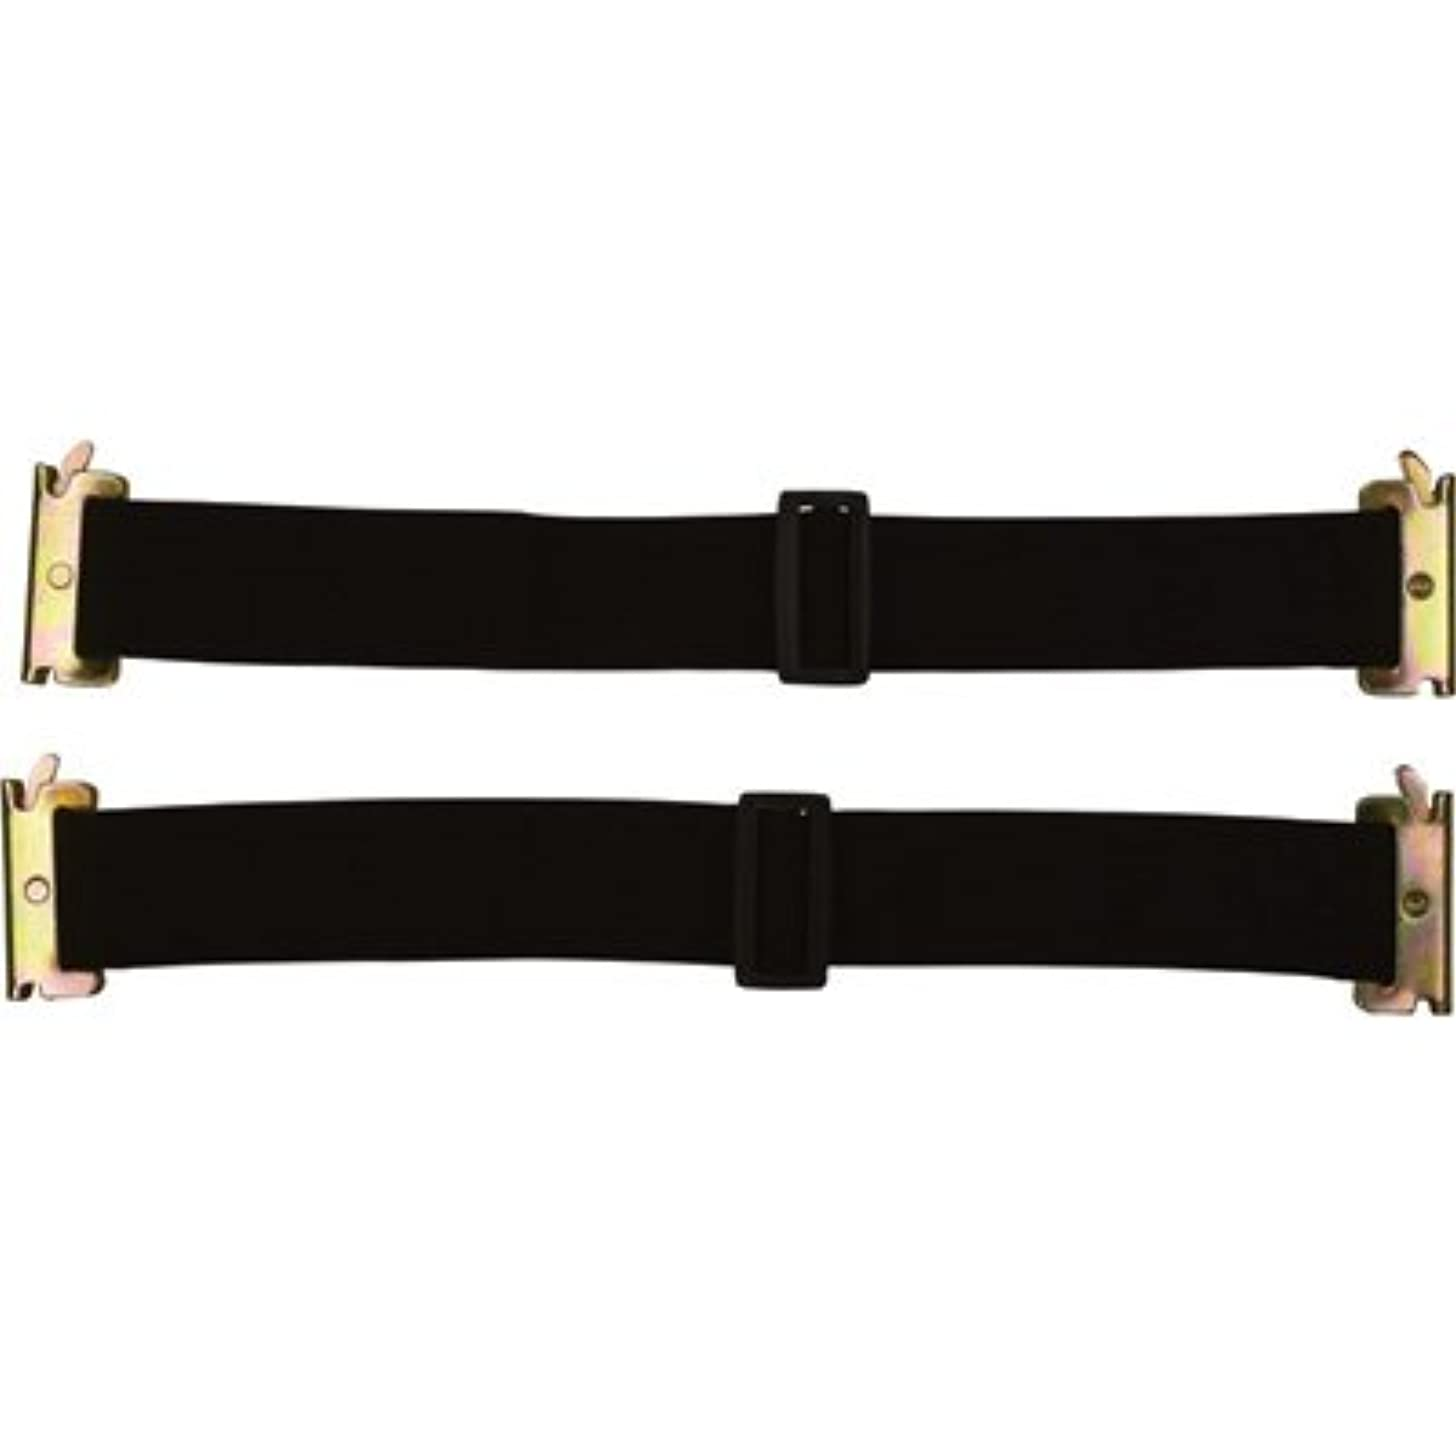 CargoSmart Adjustable Bungee Straps - 2-Pack, 16in.-24in.L, For E-Track and X-Track